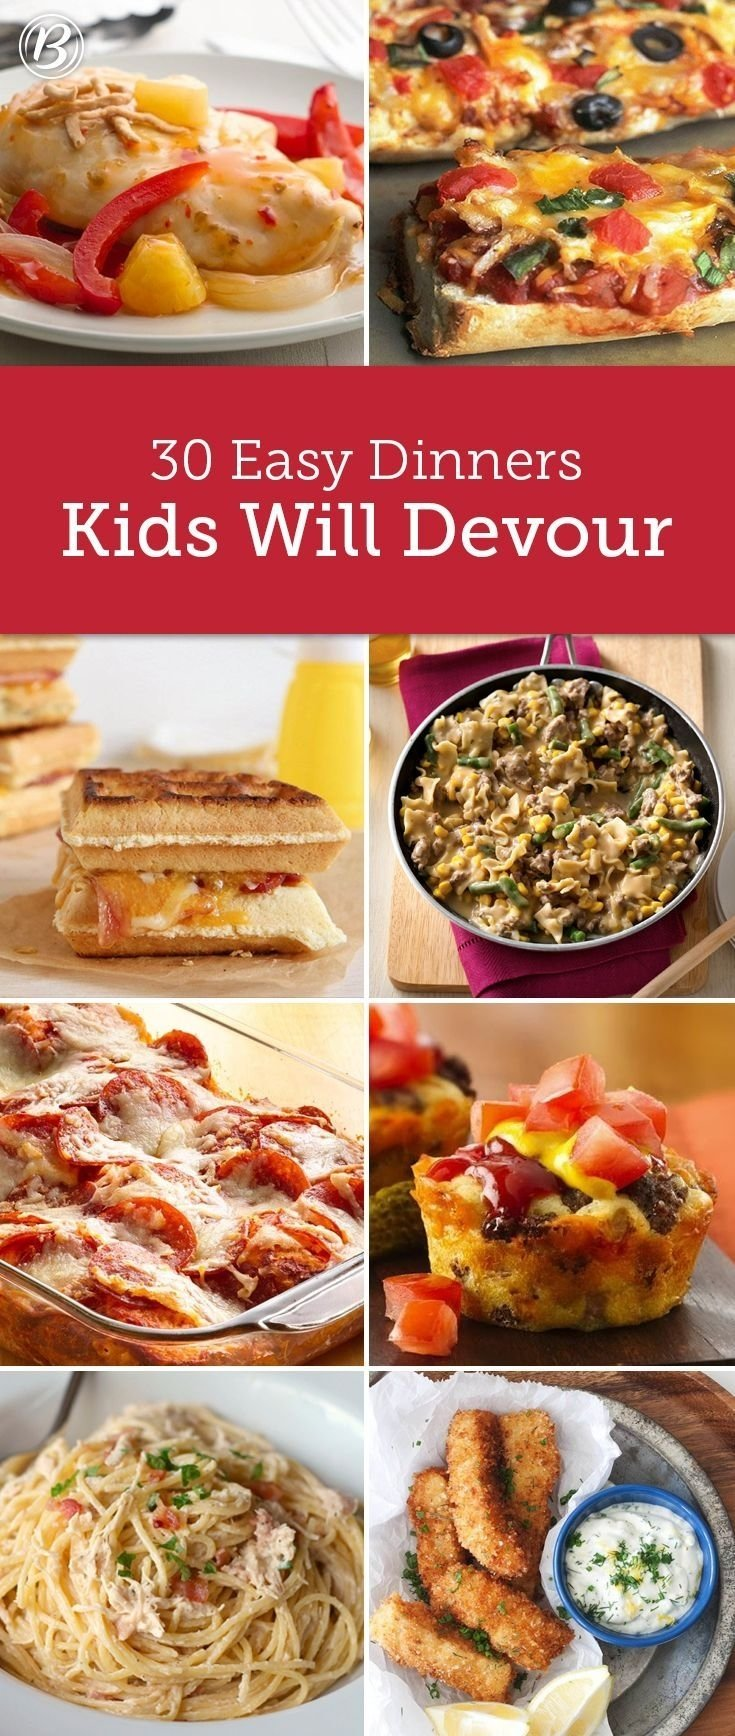 10 Pretty Healthy Lunch Ideas For Picky Eaters 70 best food ideas for toddlers images on pinterest toddler food 3 2020